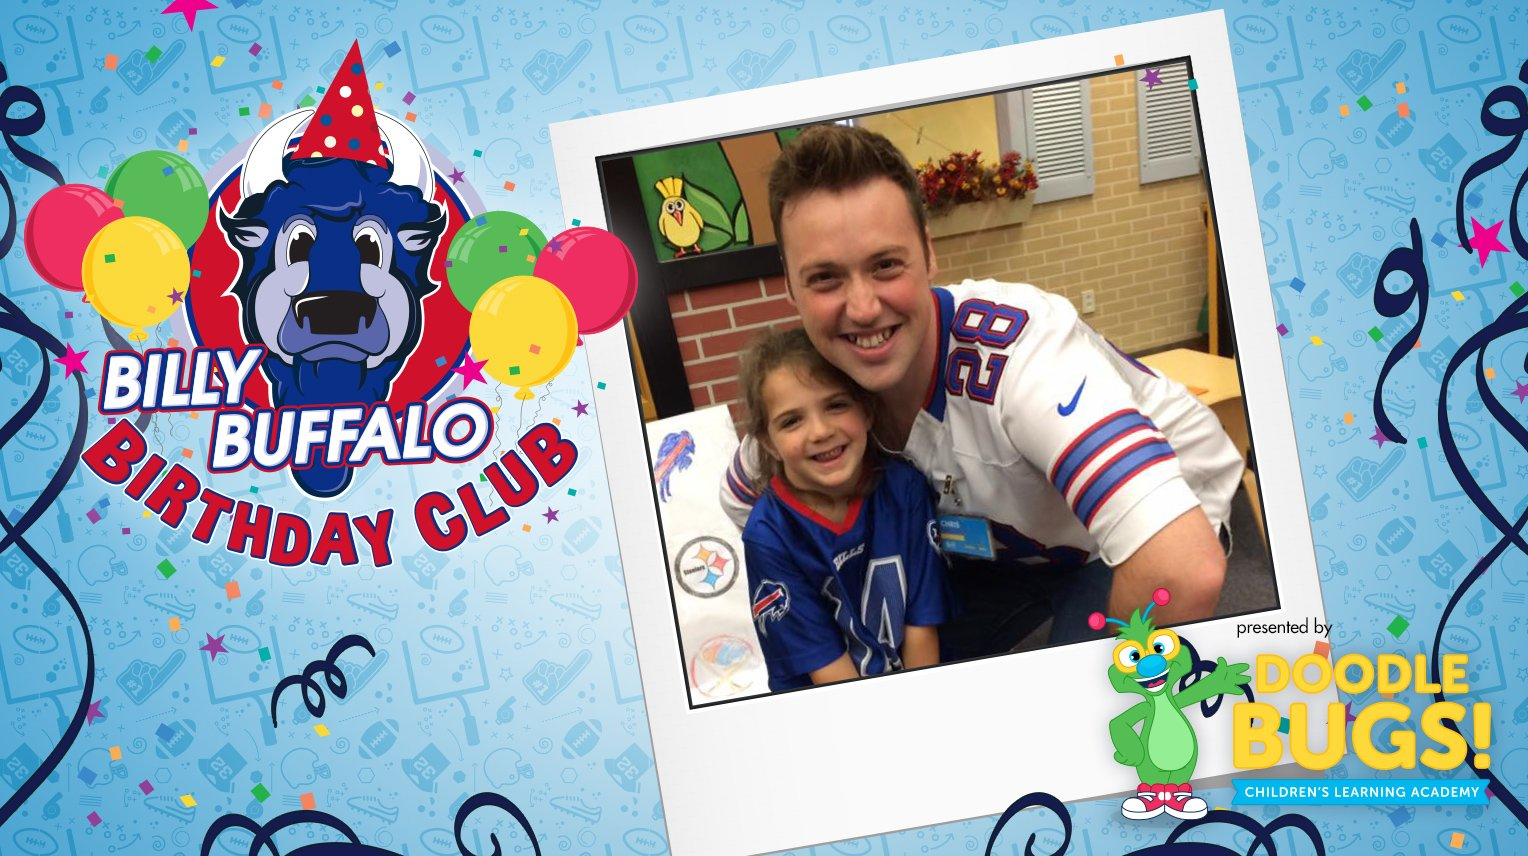 Sign up your child for the @DoodleBugsUSA Billy Buffalo Birthday Club! https://t.co/yxAZfveOj9 https://t.co/bqqq6Zdxil